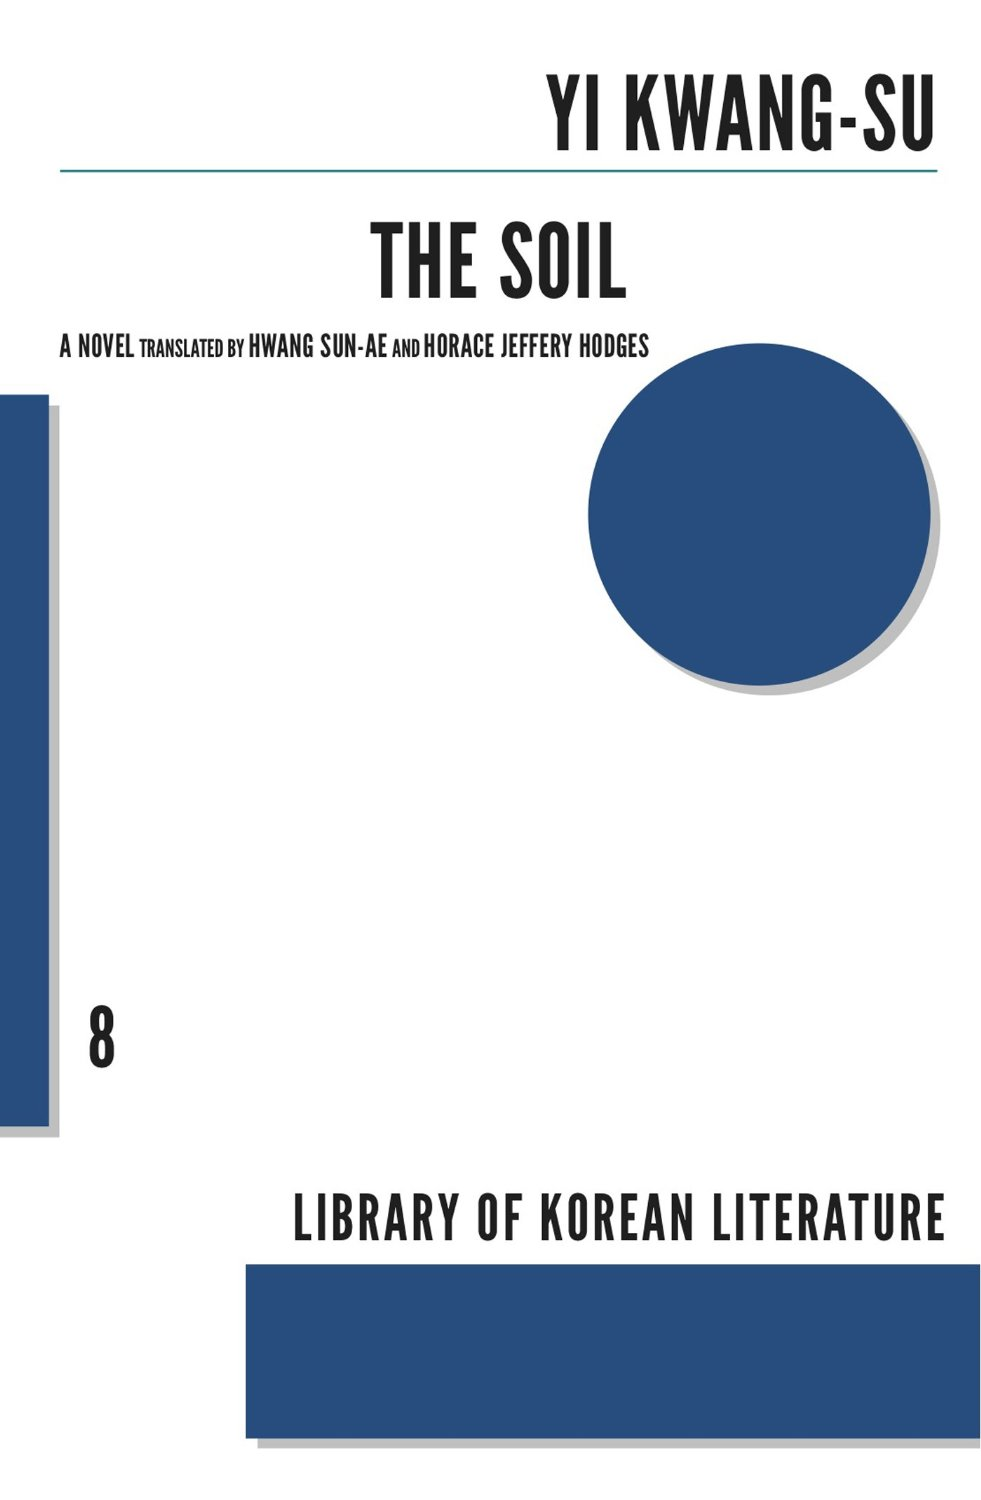 by Yi Kwang-su, translated from KOREAN by Hwang Sun-ae & Horace Jeffery Hodges